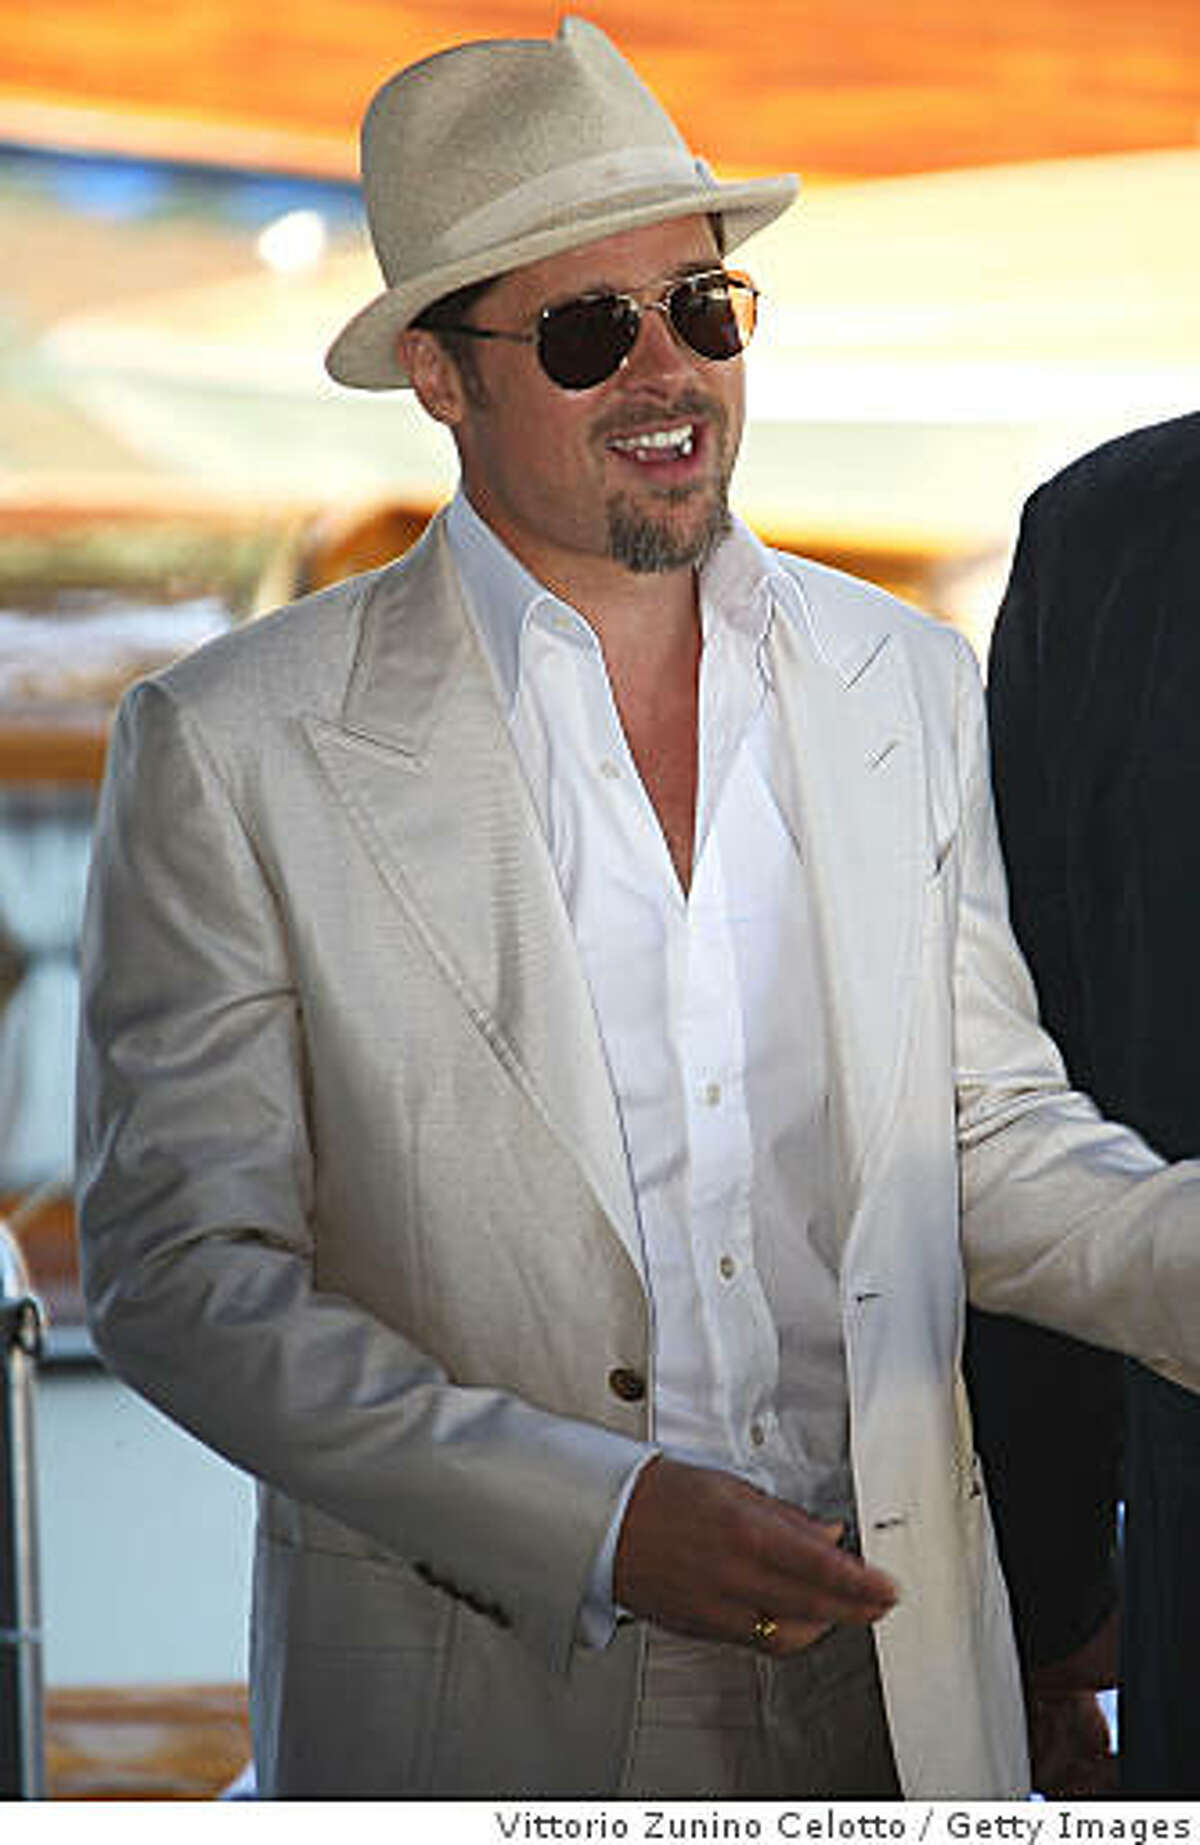 VENICE, ITALY - AUGUST 27: Actor Brad Pitt arrives for the 'Burn After Reading' Photocall, part of the 65th Venice Film Festival at Palazzo del Casino on August 27 2008 in Venice, Italy. (Photo by Vittorio Zunino Celotto/Getty Images)